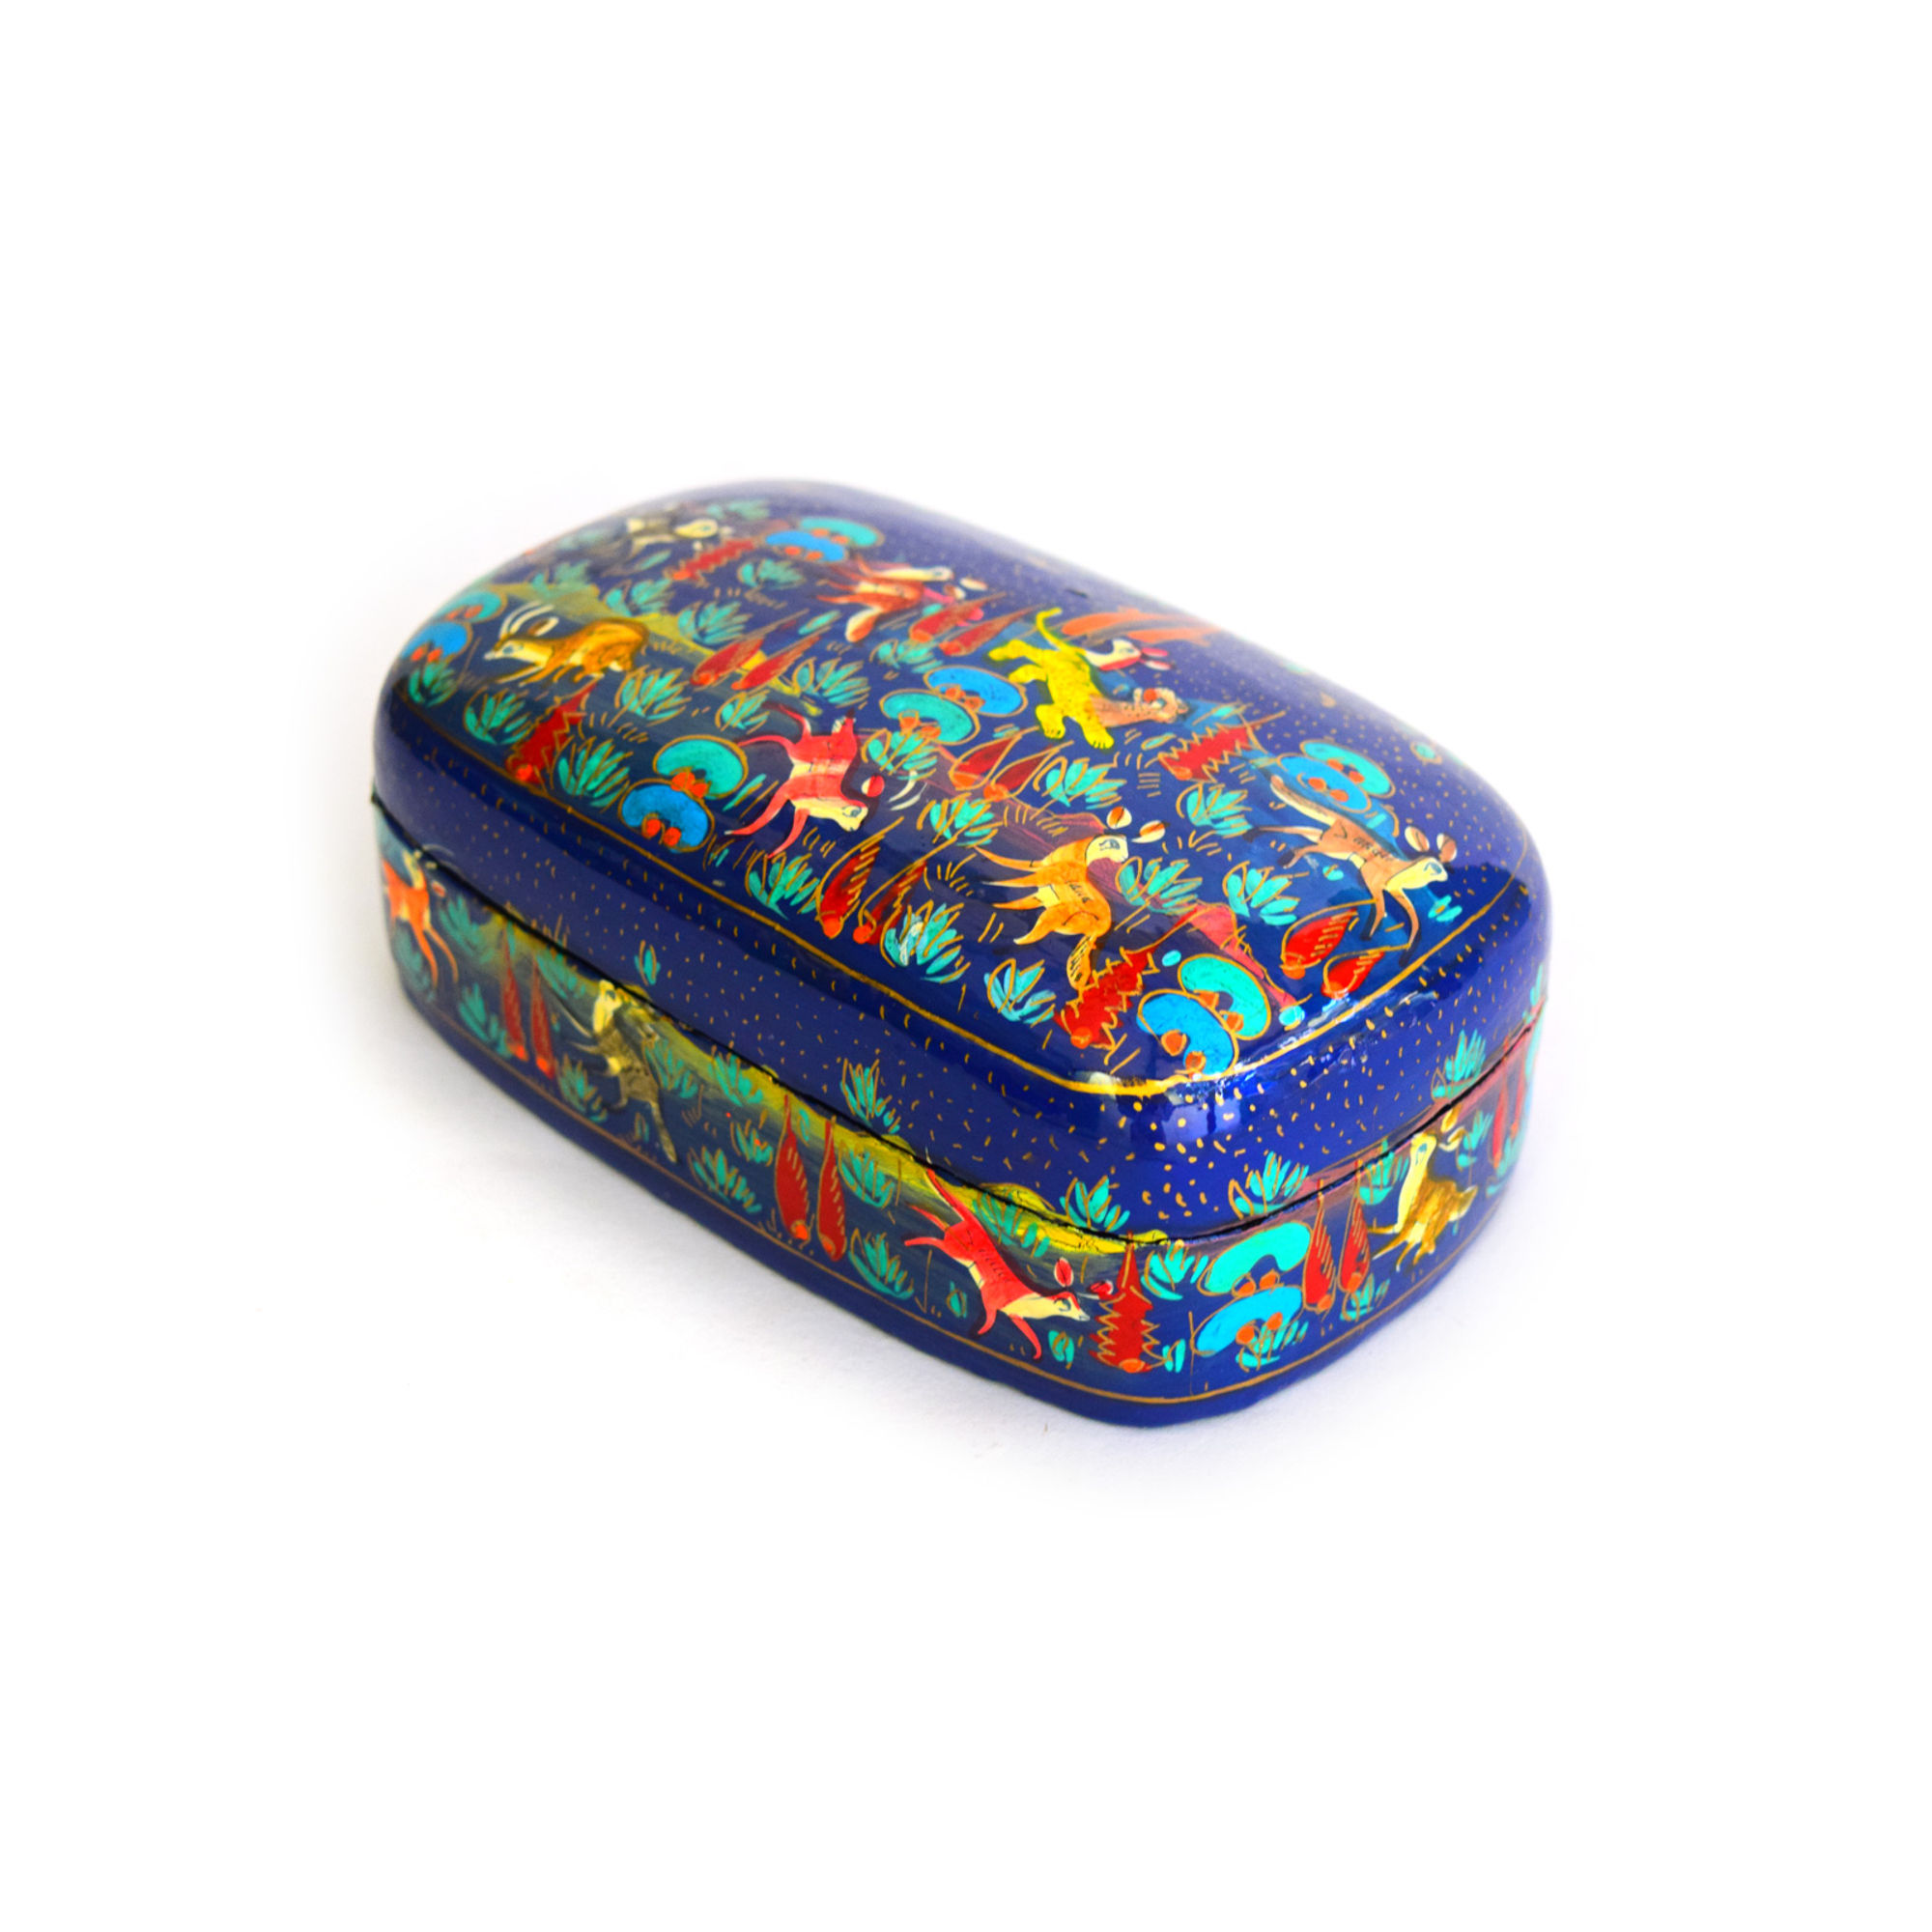 Kashmiri Beautiful Decorative Mater Box, Blue animal design